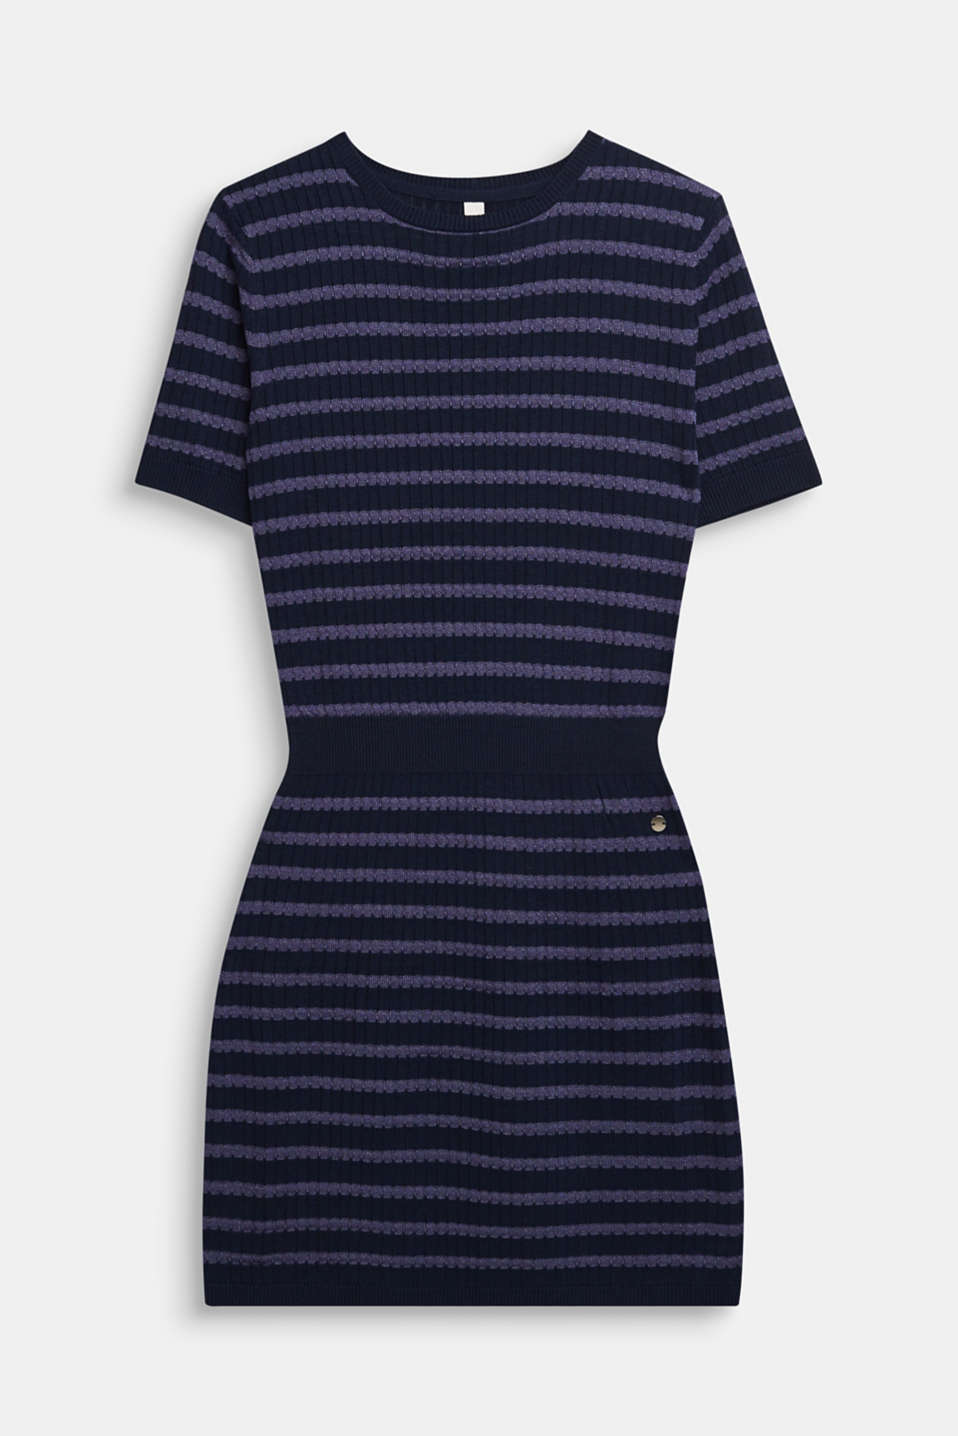 Esprit - Knit dress with glittering stripes